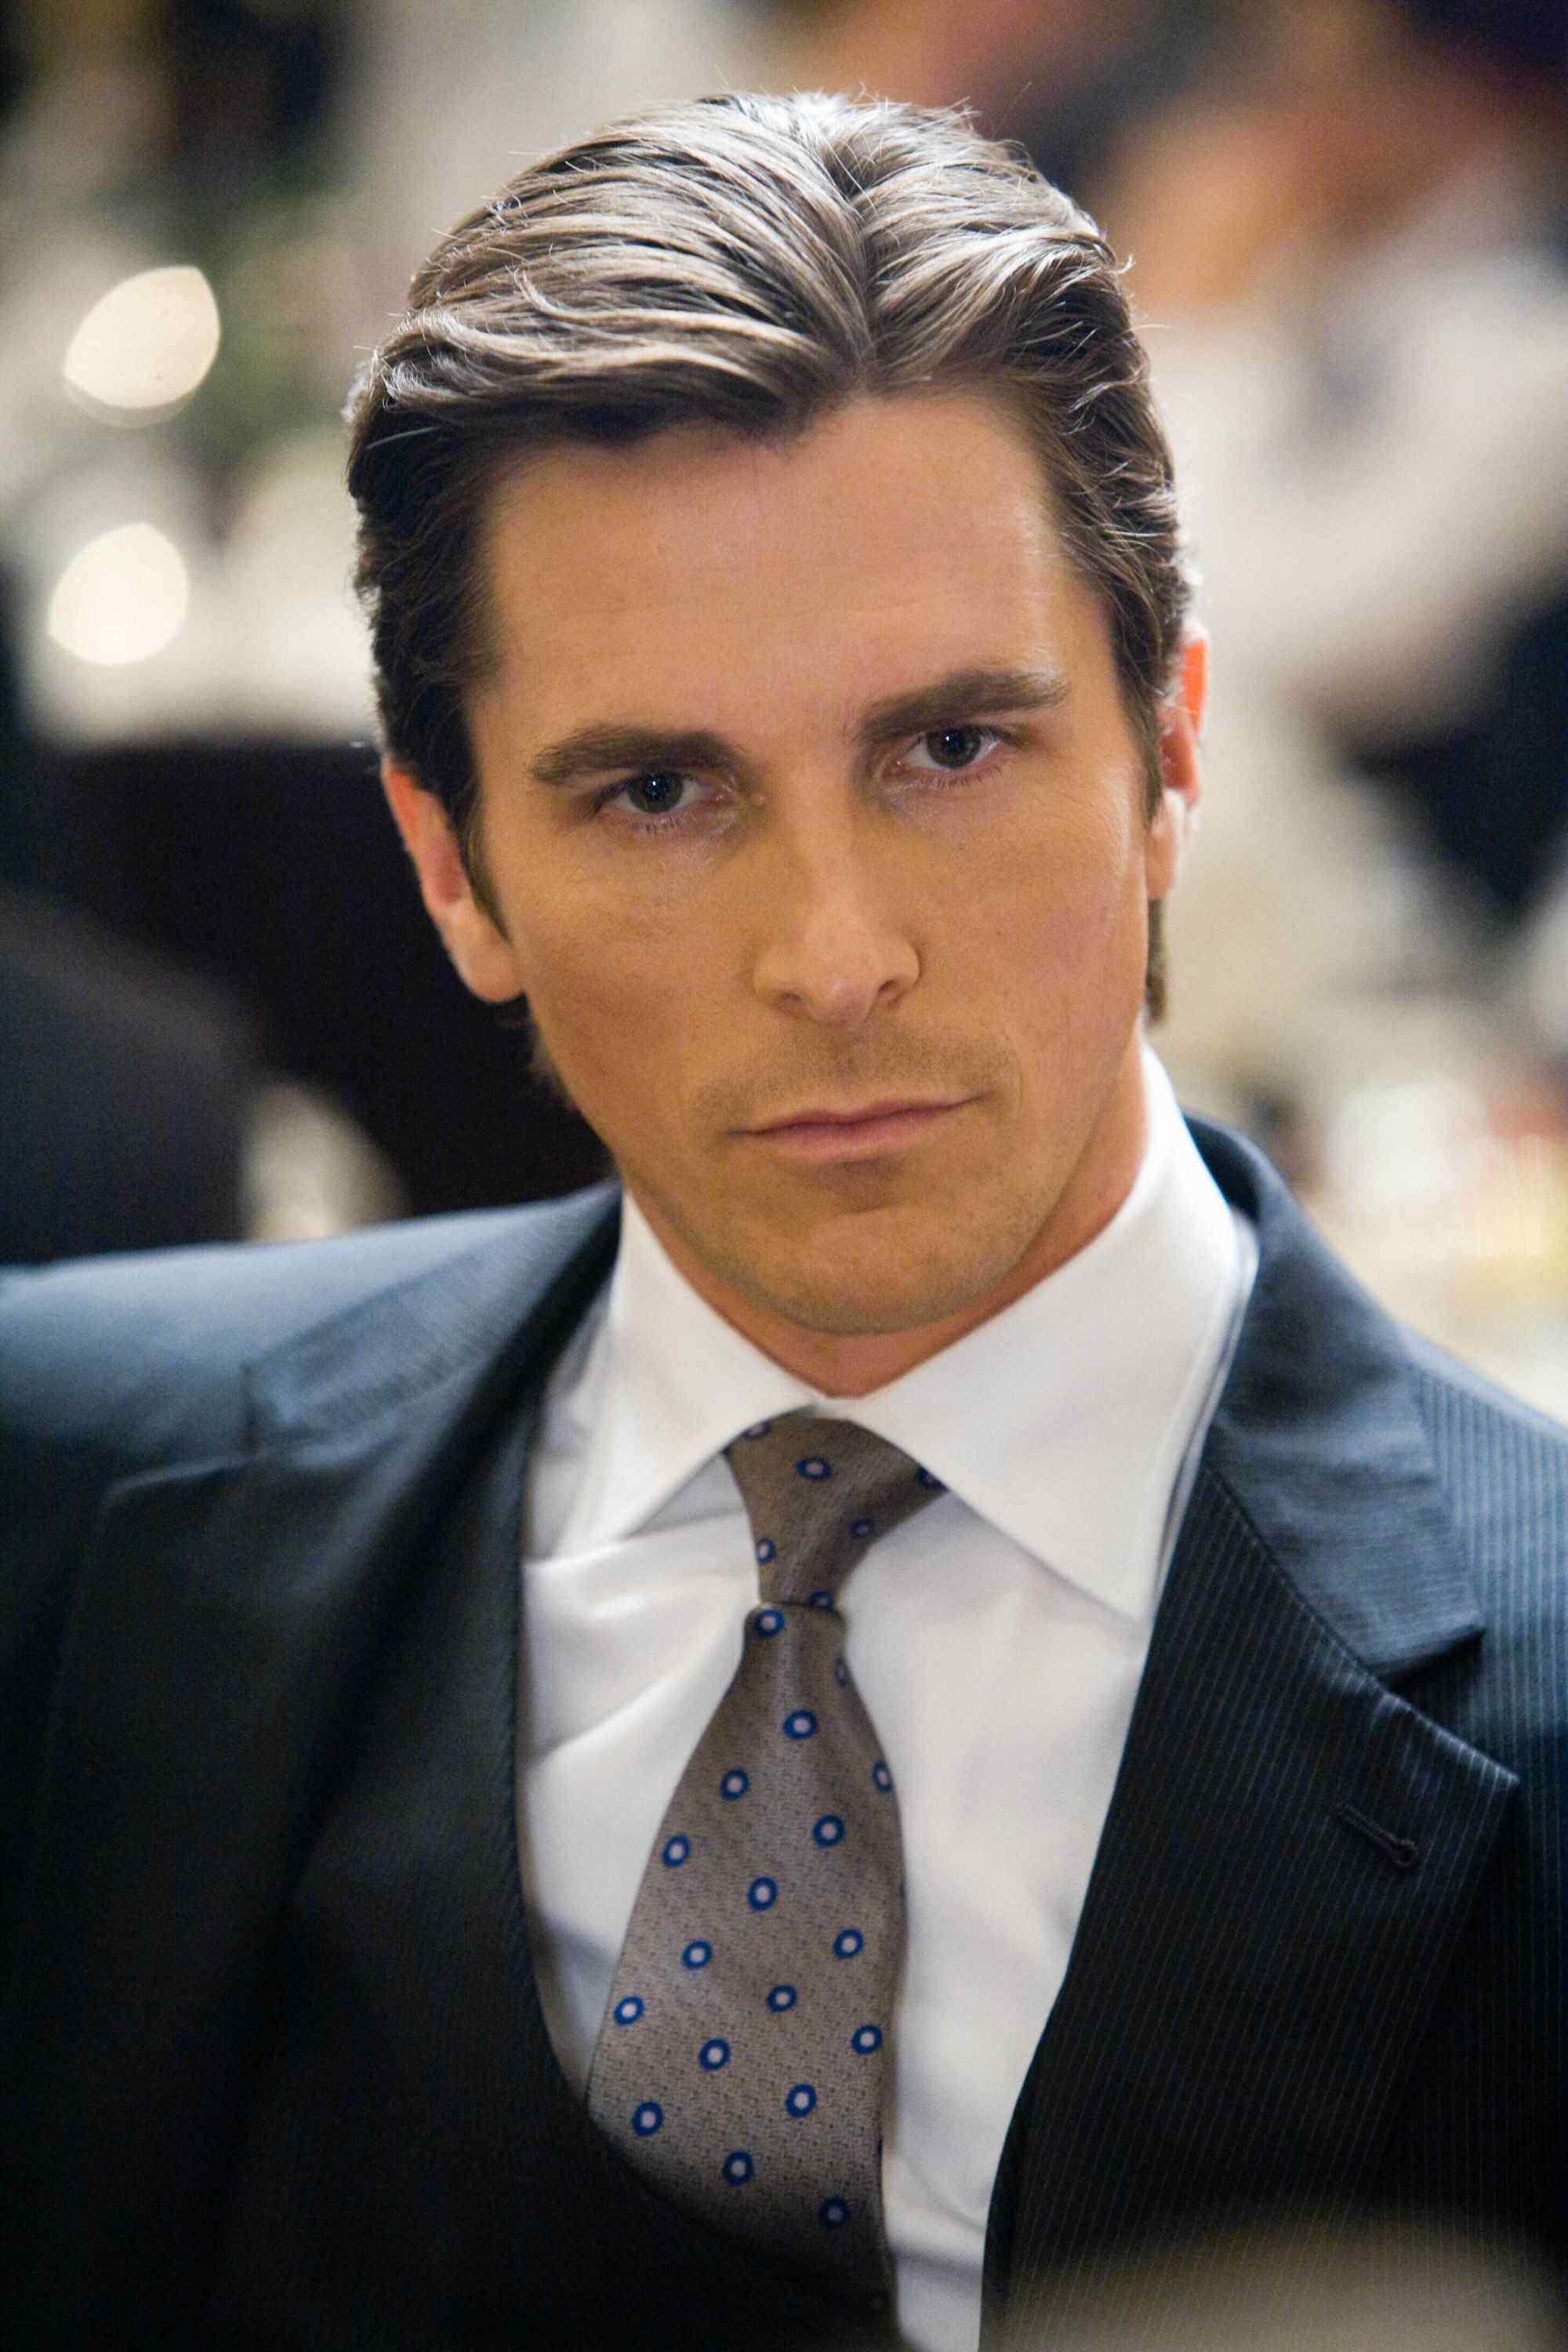 Christian Bale Backgrounds on Wallpapers Vista